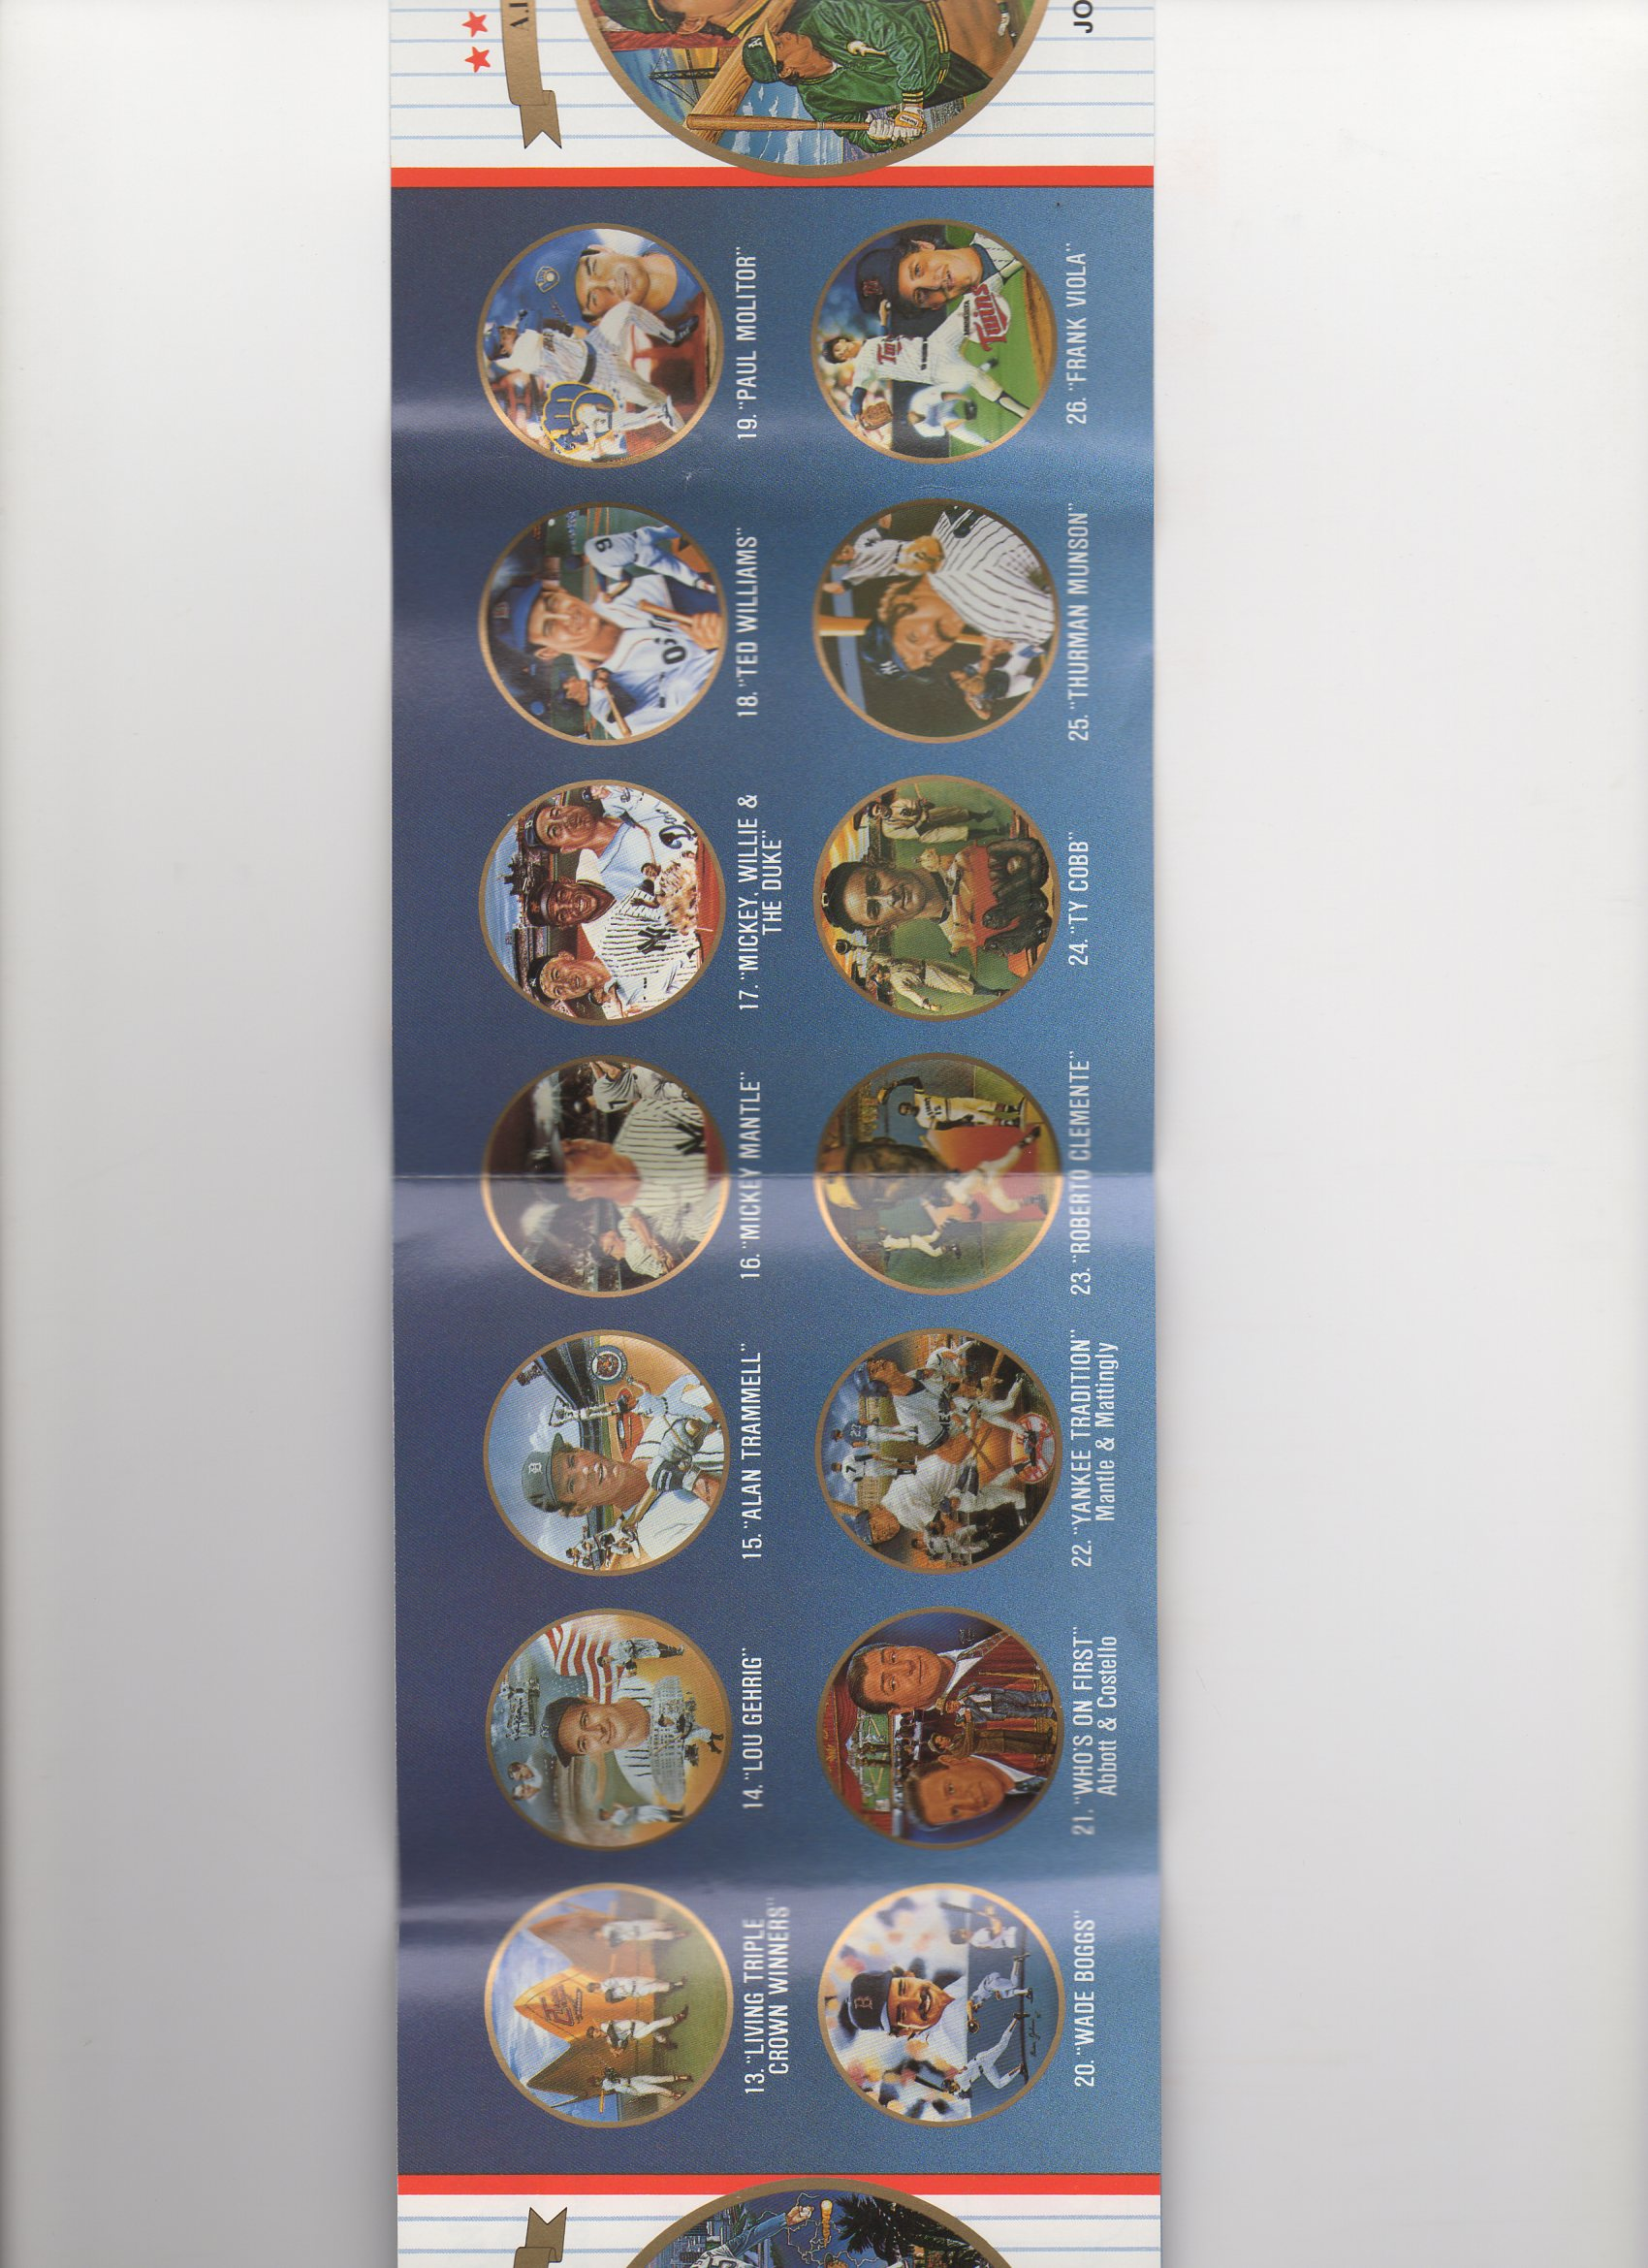 1989 sports impressions 10 page foldout brochure